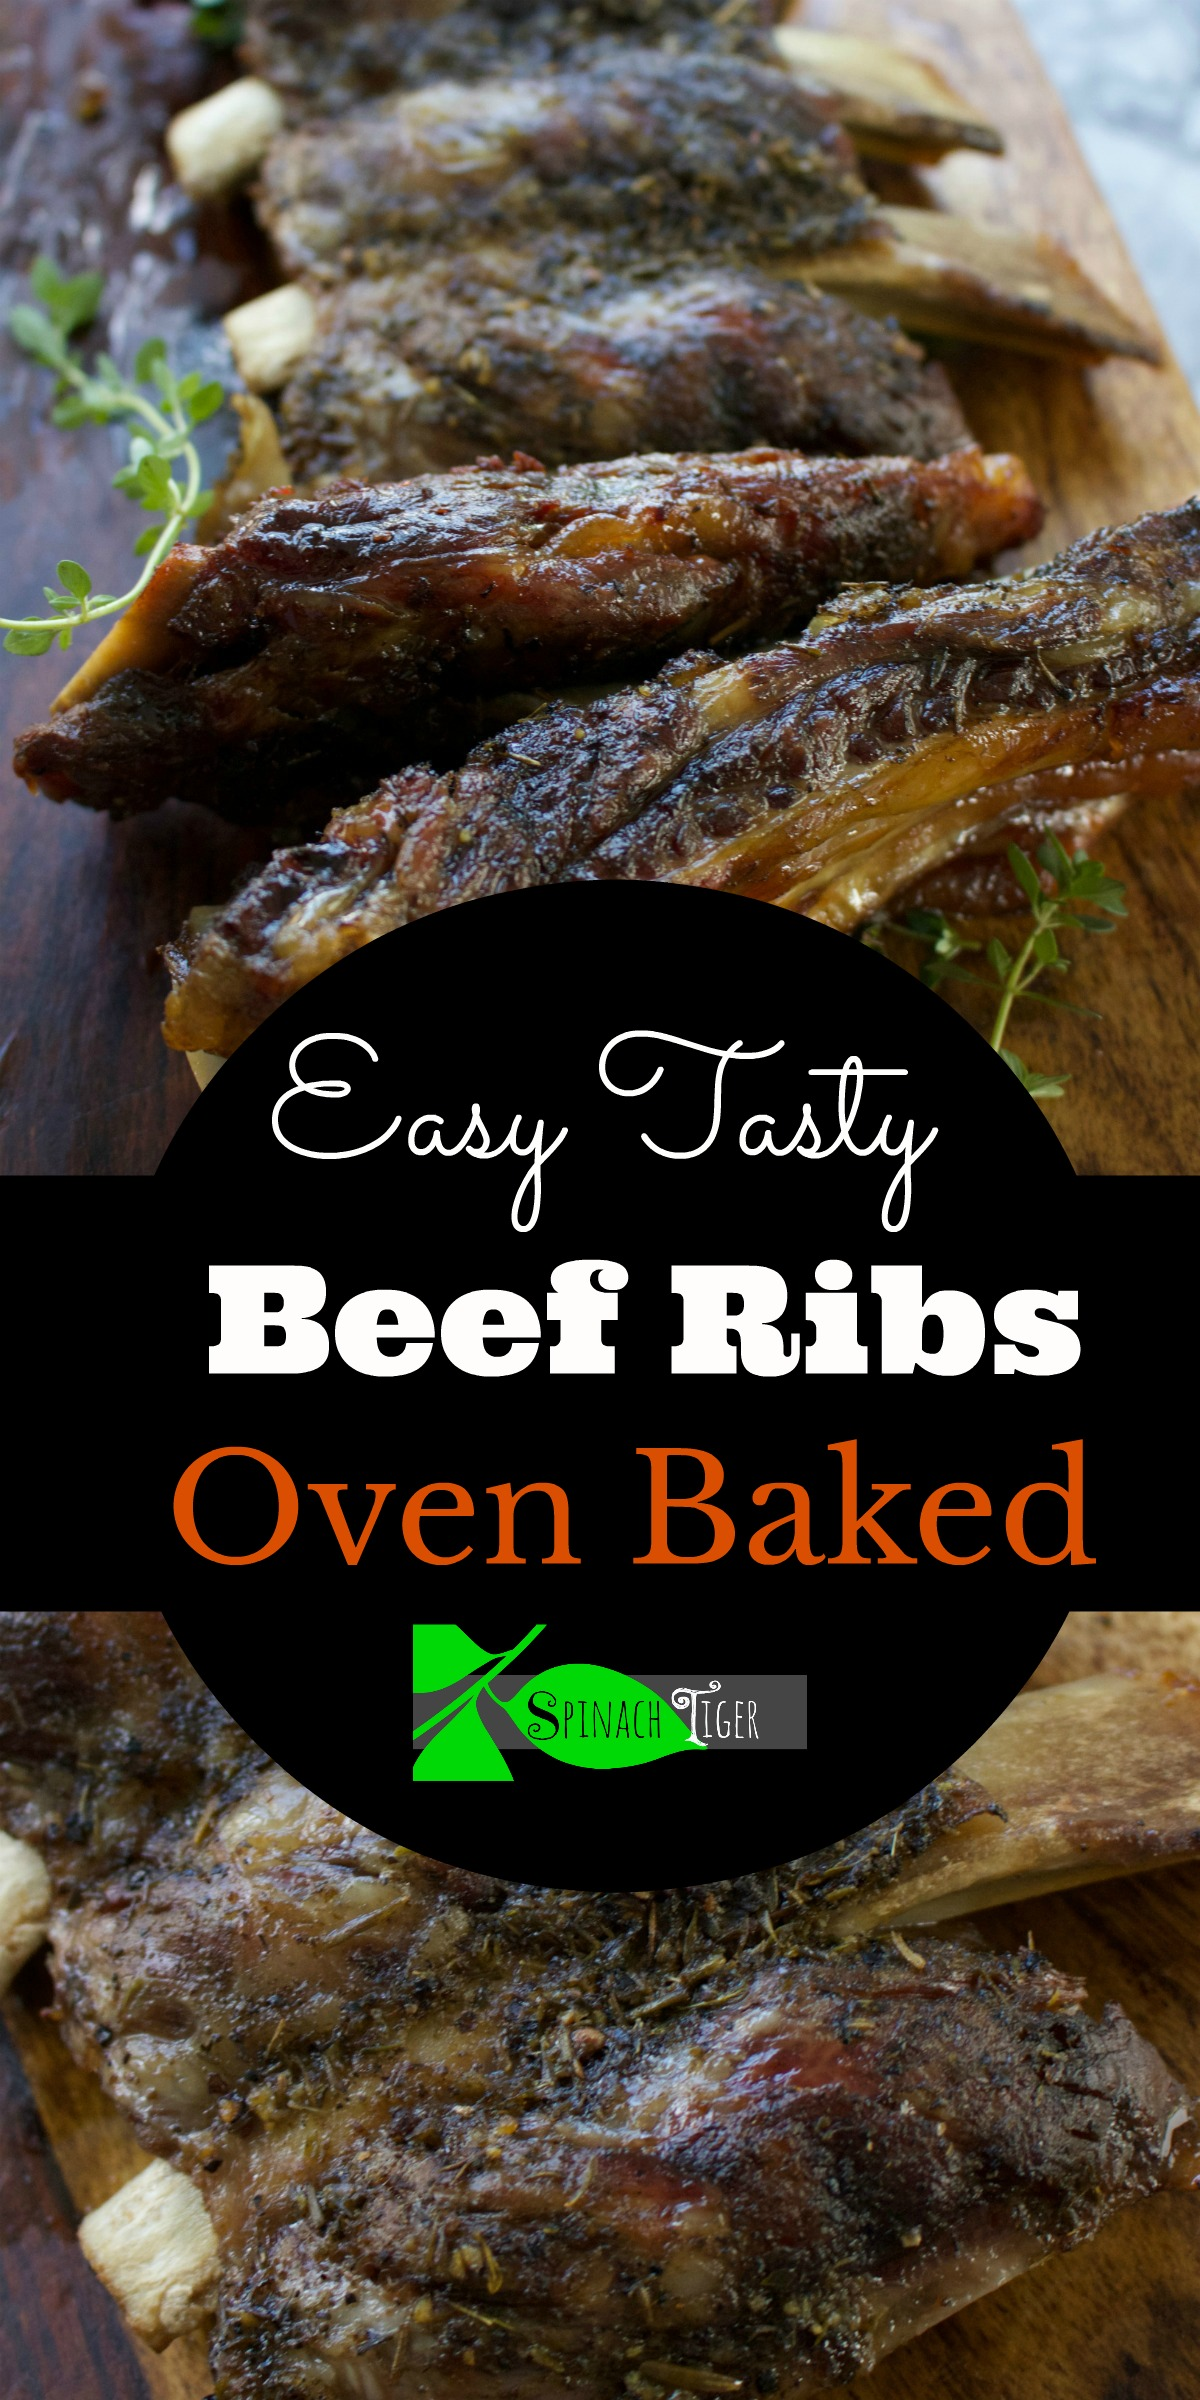 Oven Baked Beef Ribs from Spinach Tiger #beefribs